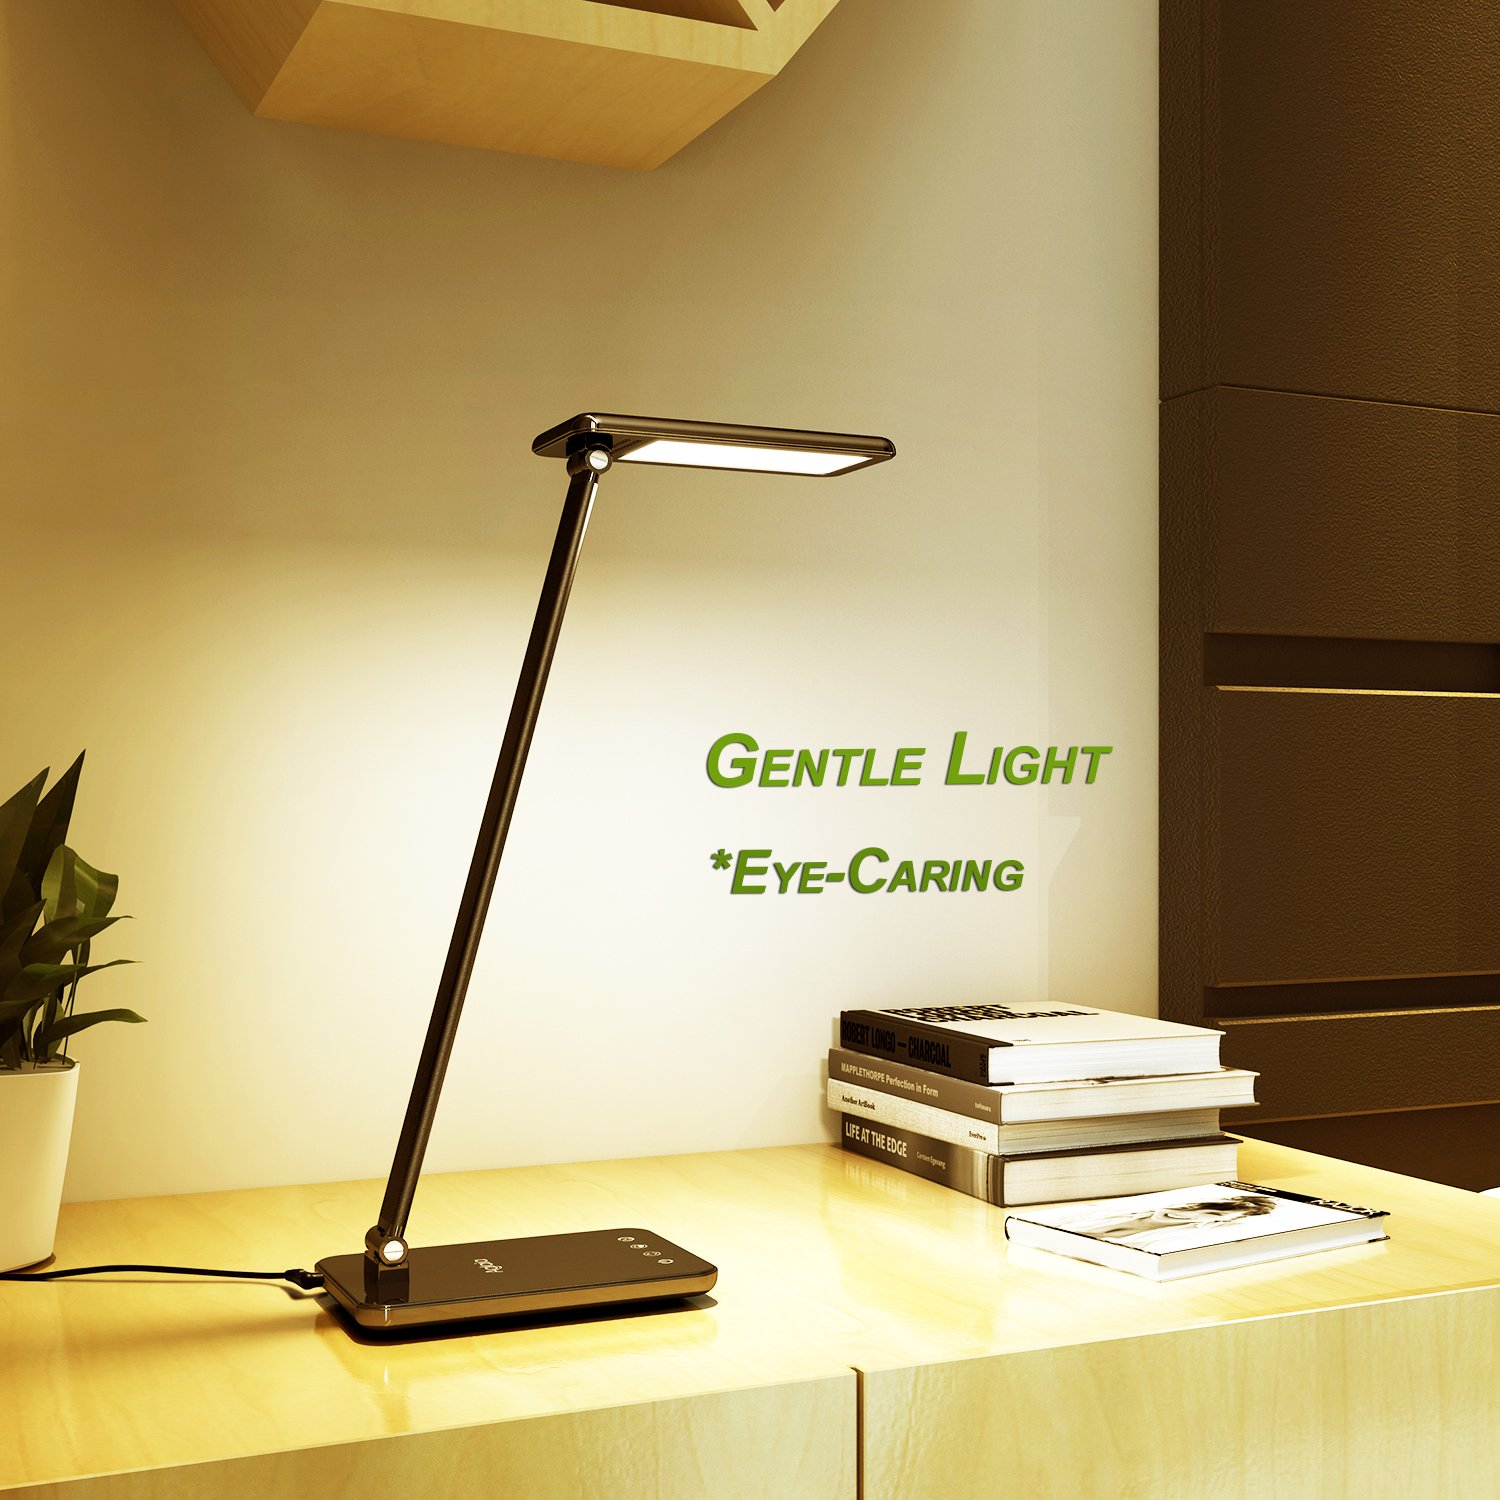 LED Desk Lamp 8W, Aglaia Eye-Caring Table Lamps with Dimmable Touch Control, Stepless Brightness Levels and Lighting Modes, Aluminum Alloy ARM, 1-Hour Auto Timer, Memory Function by Aglaia (Image #3)